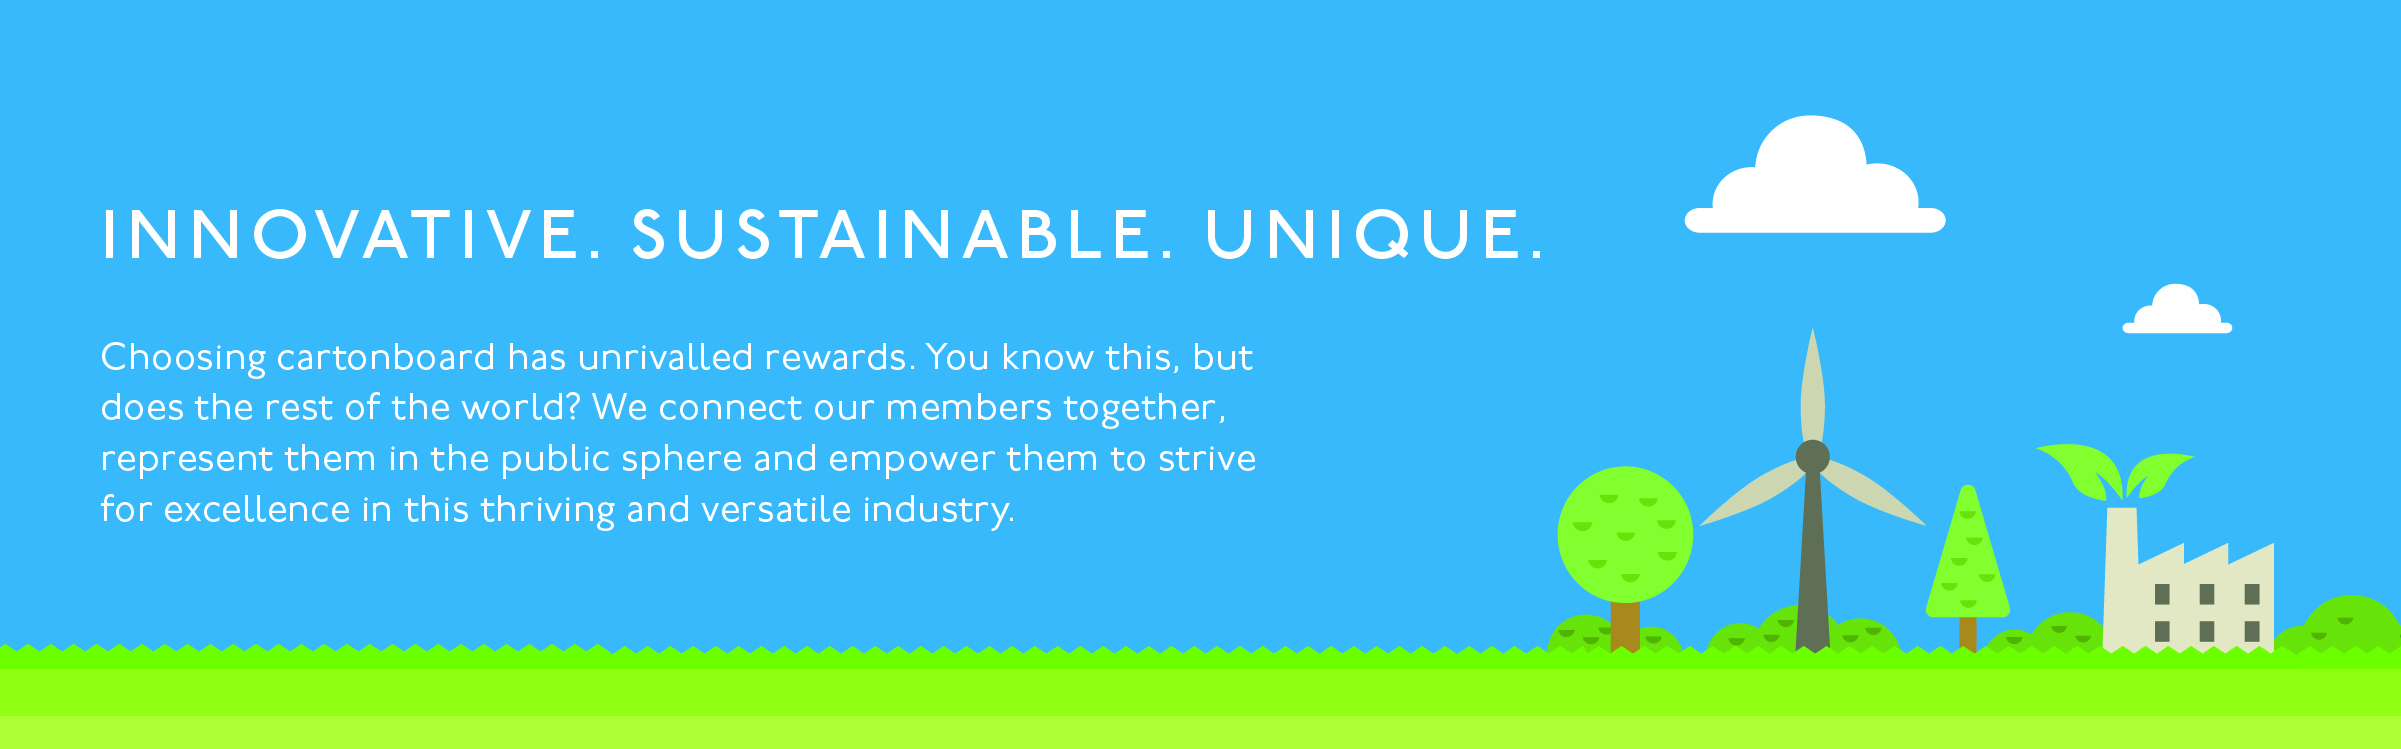 Innovative. Sustainable. Unique